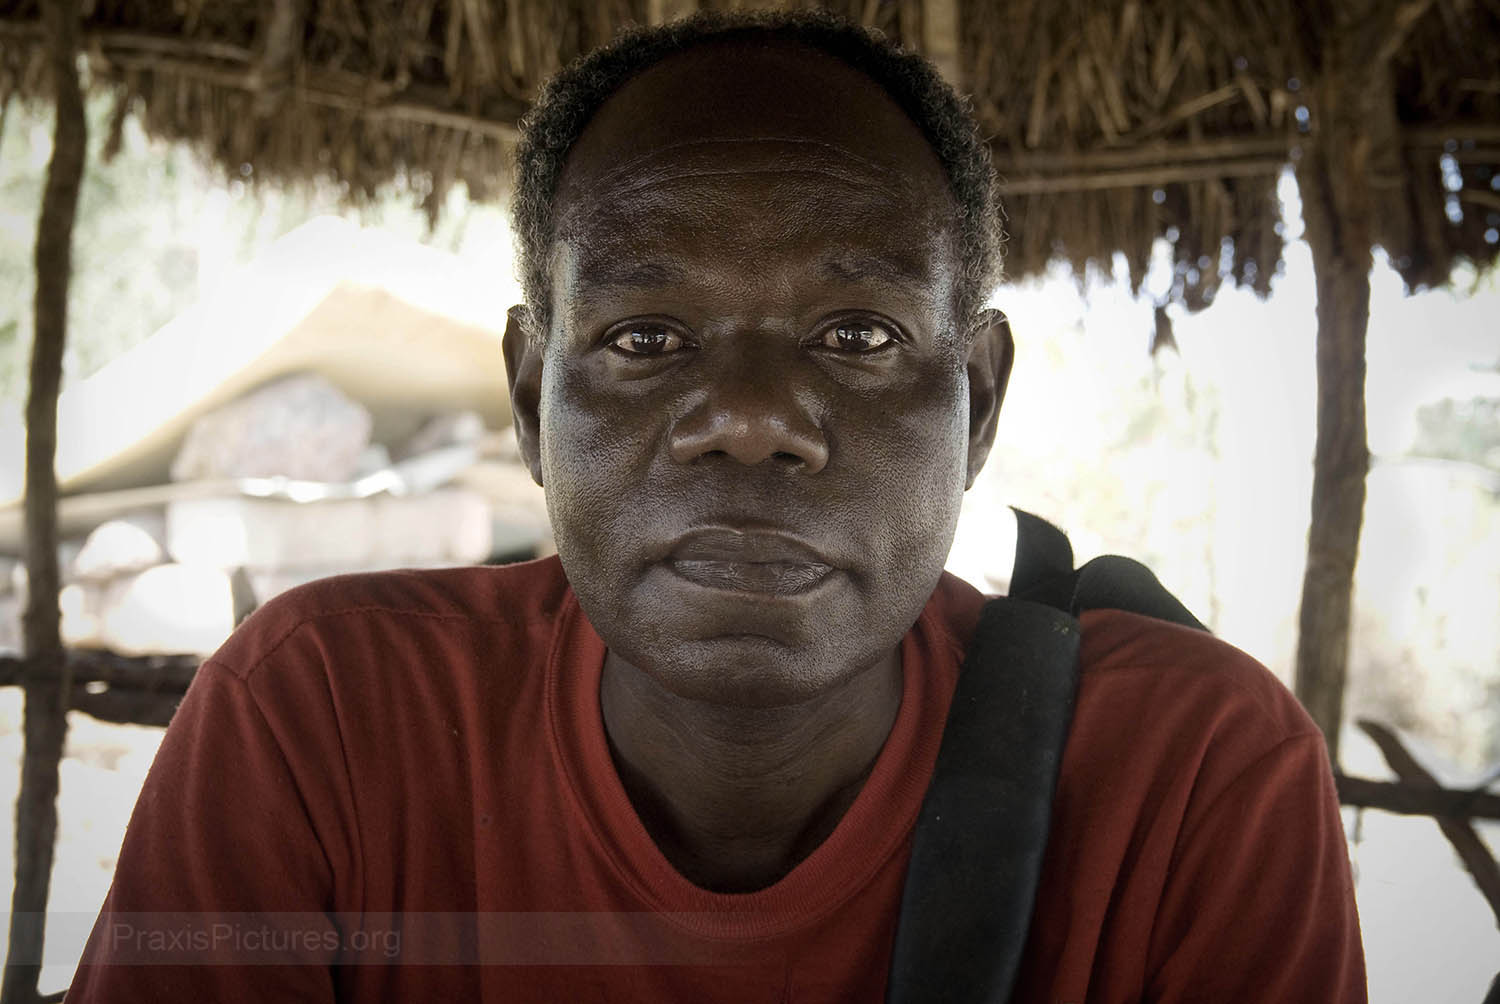 "BUCHARD, RESIDENT OF KAHAMA:   ""I want you to tell people in Canada: We know Canada; We know the history of Canada; We know the Canadian people are good people; We know they believe in human rights. But what this Canadian company is doing here is just terrible. Before, we were happy. We lived normal lives by Tanzanian standards. But now people here are really suffering. It is very difficult to make a living and feed our children here. A lot of us have lost our homes, loved ones, and livelihoods without receiving any compensation. There should have been an independent investigation into the killings a long time ago. But at this point, all we want is for the company to just sit down at the table with us so we can discuss where we can go from here. But they never listen to us, and they are lying to people in Canada."""